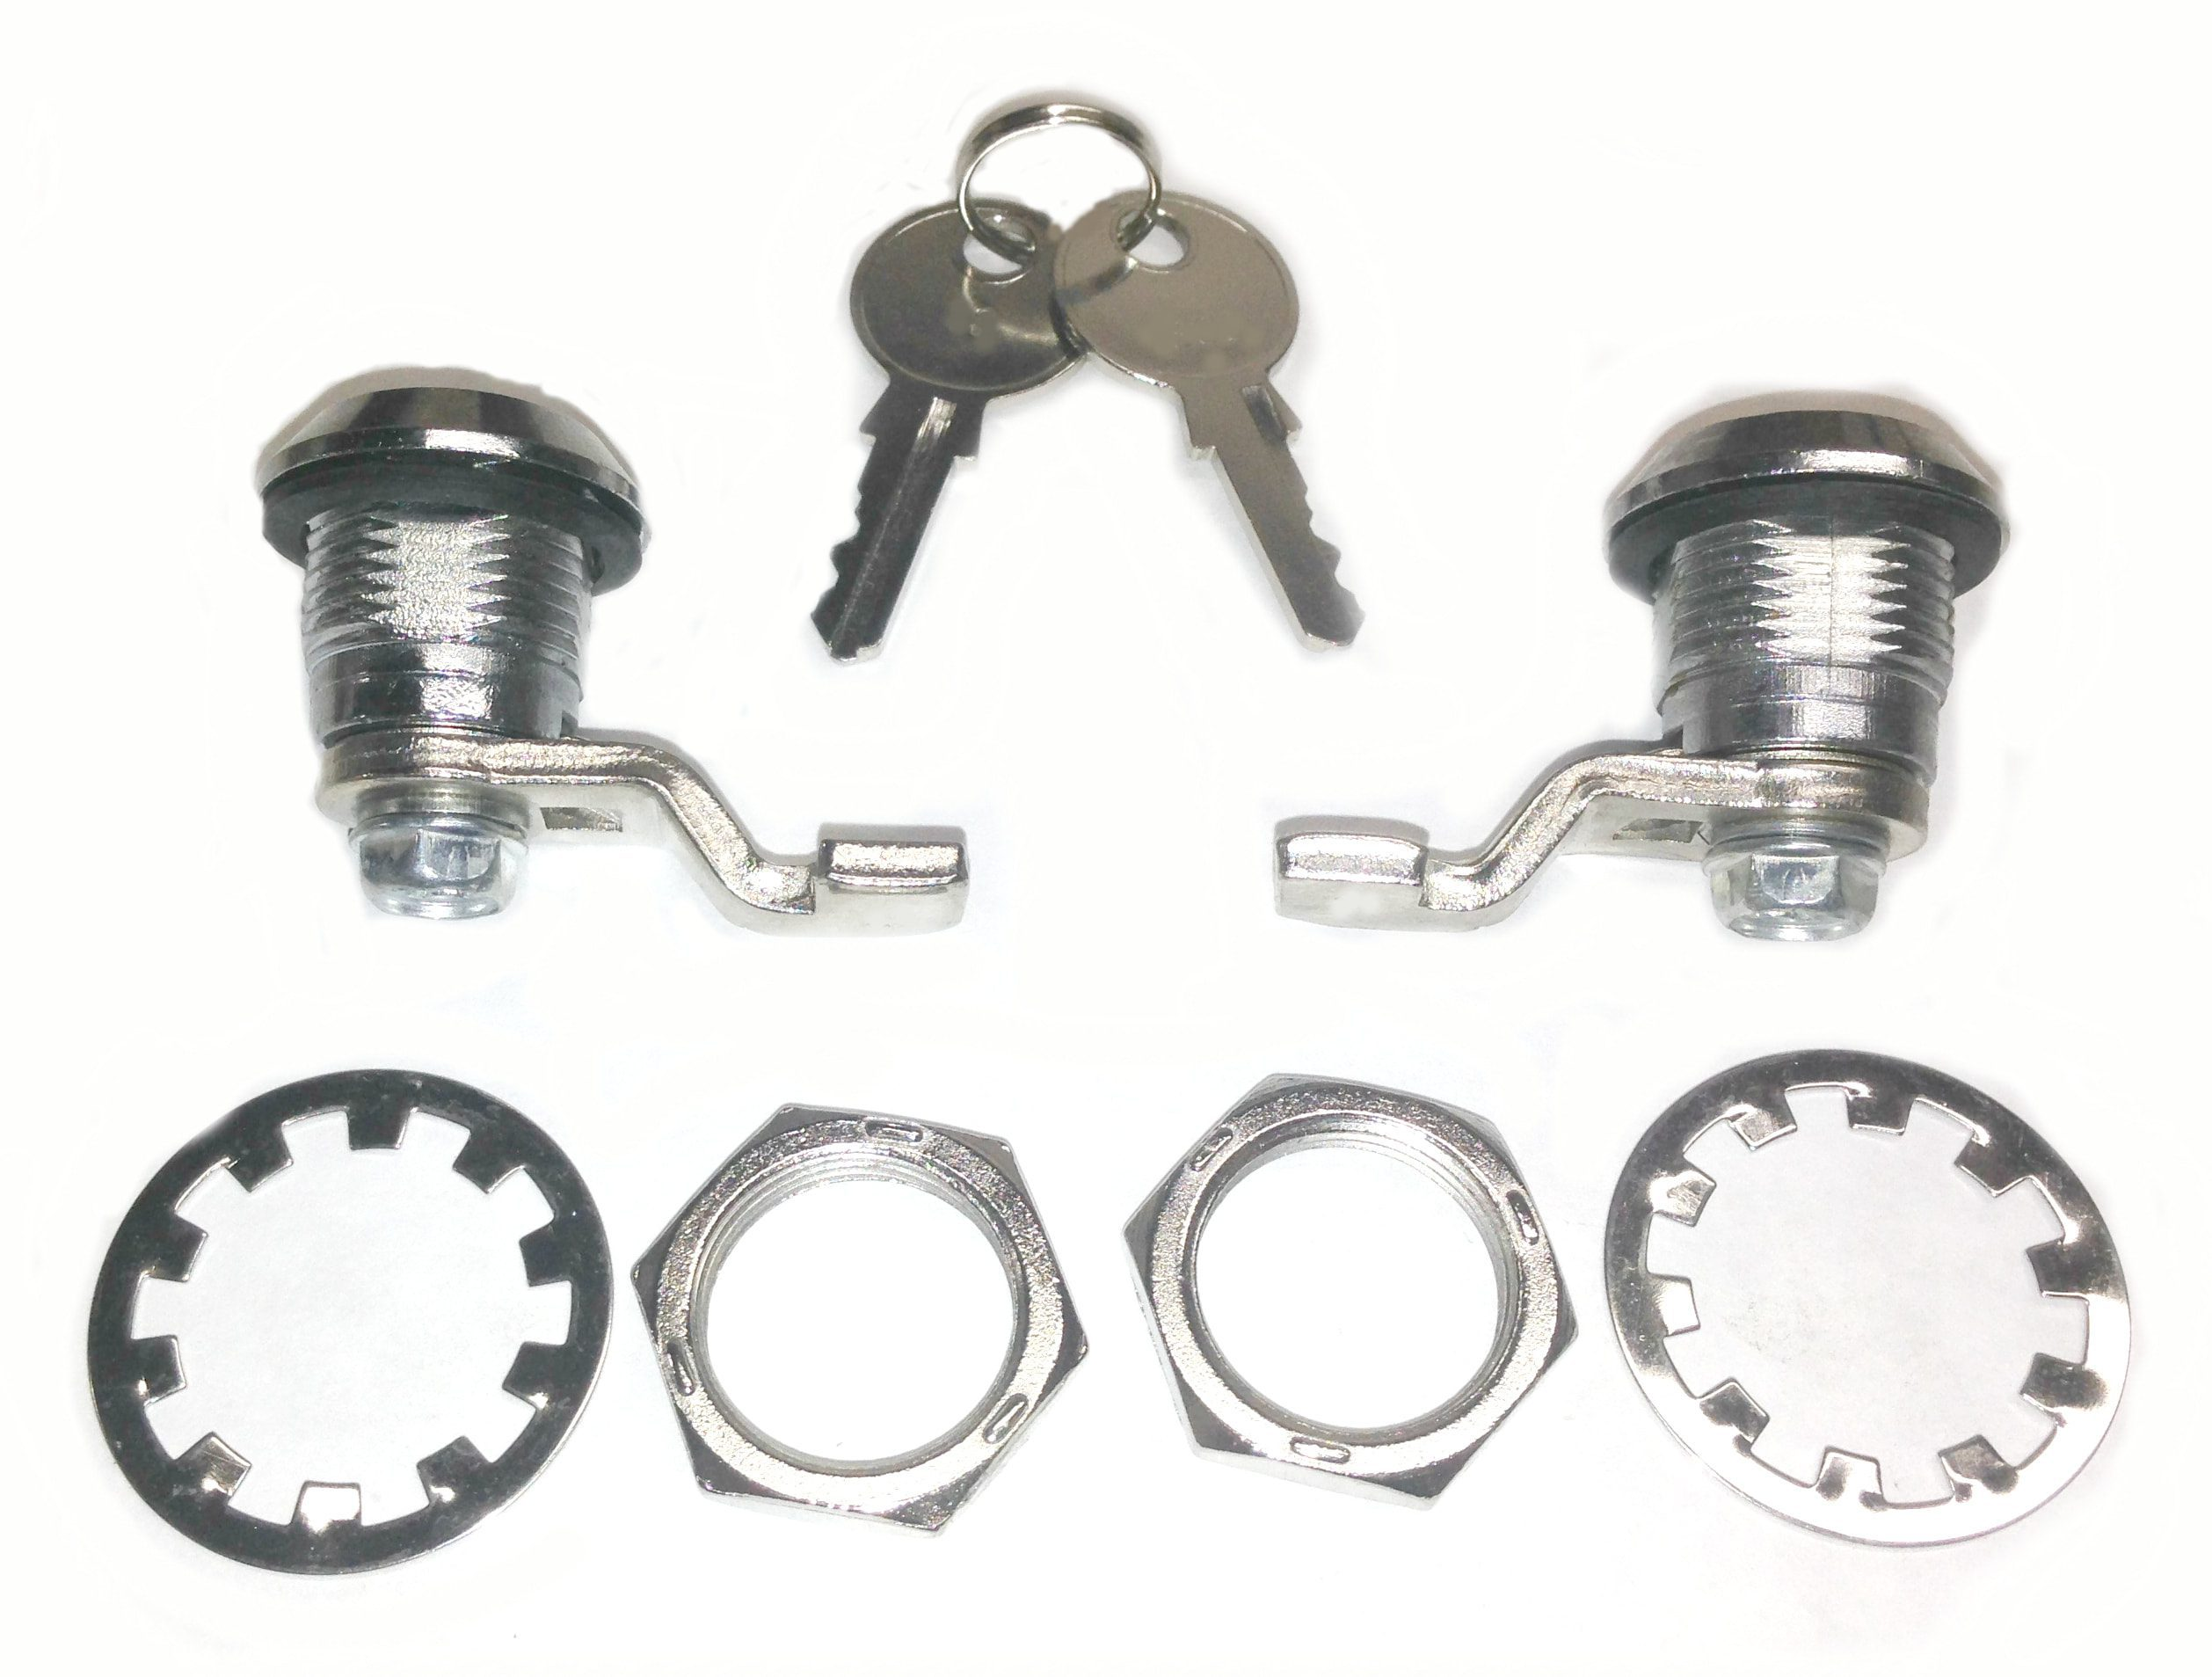 Replacement locks for Easy Brackets